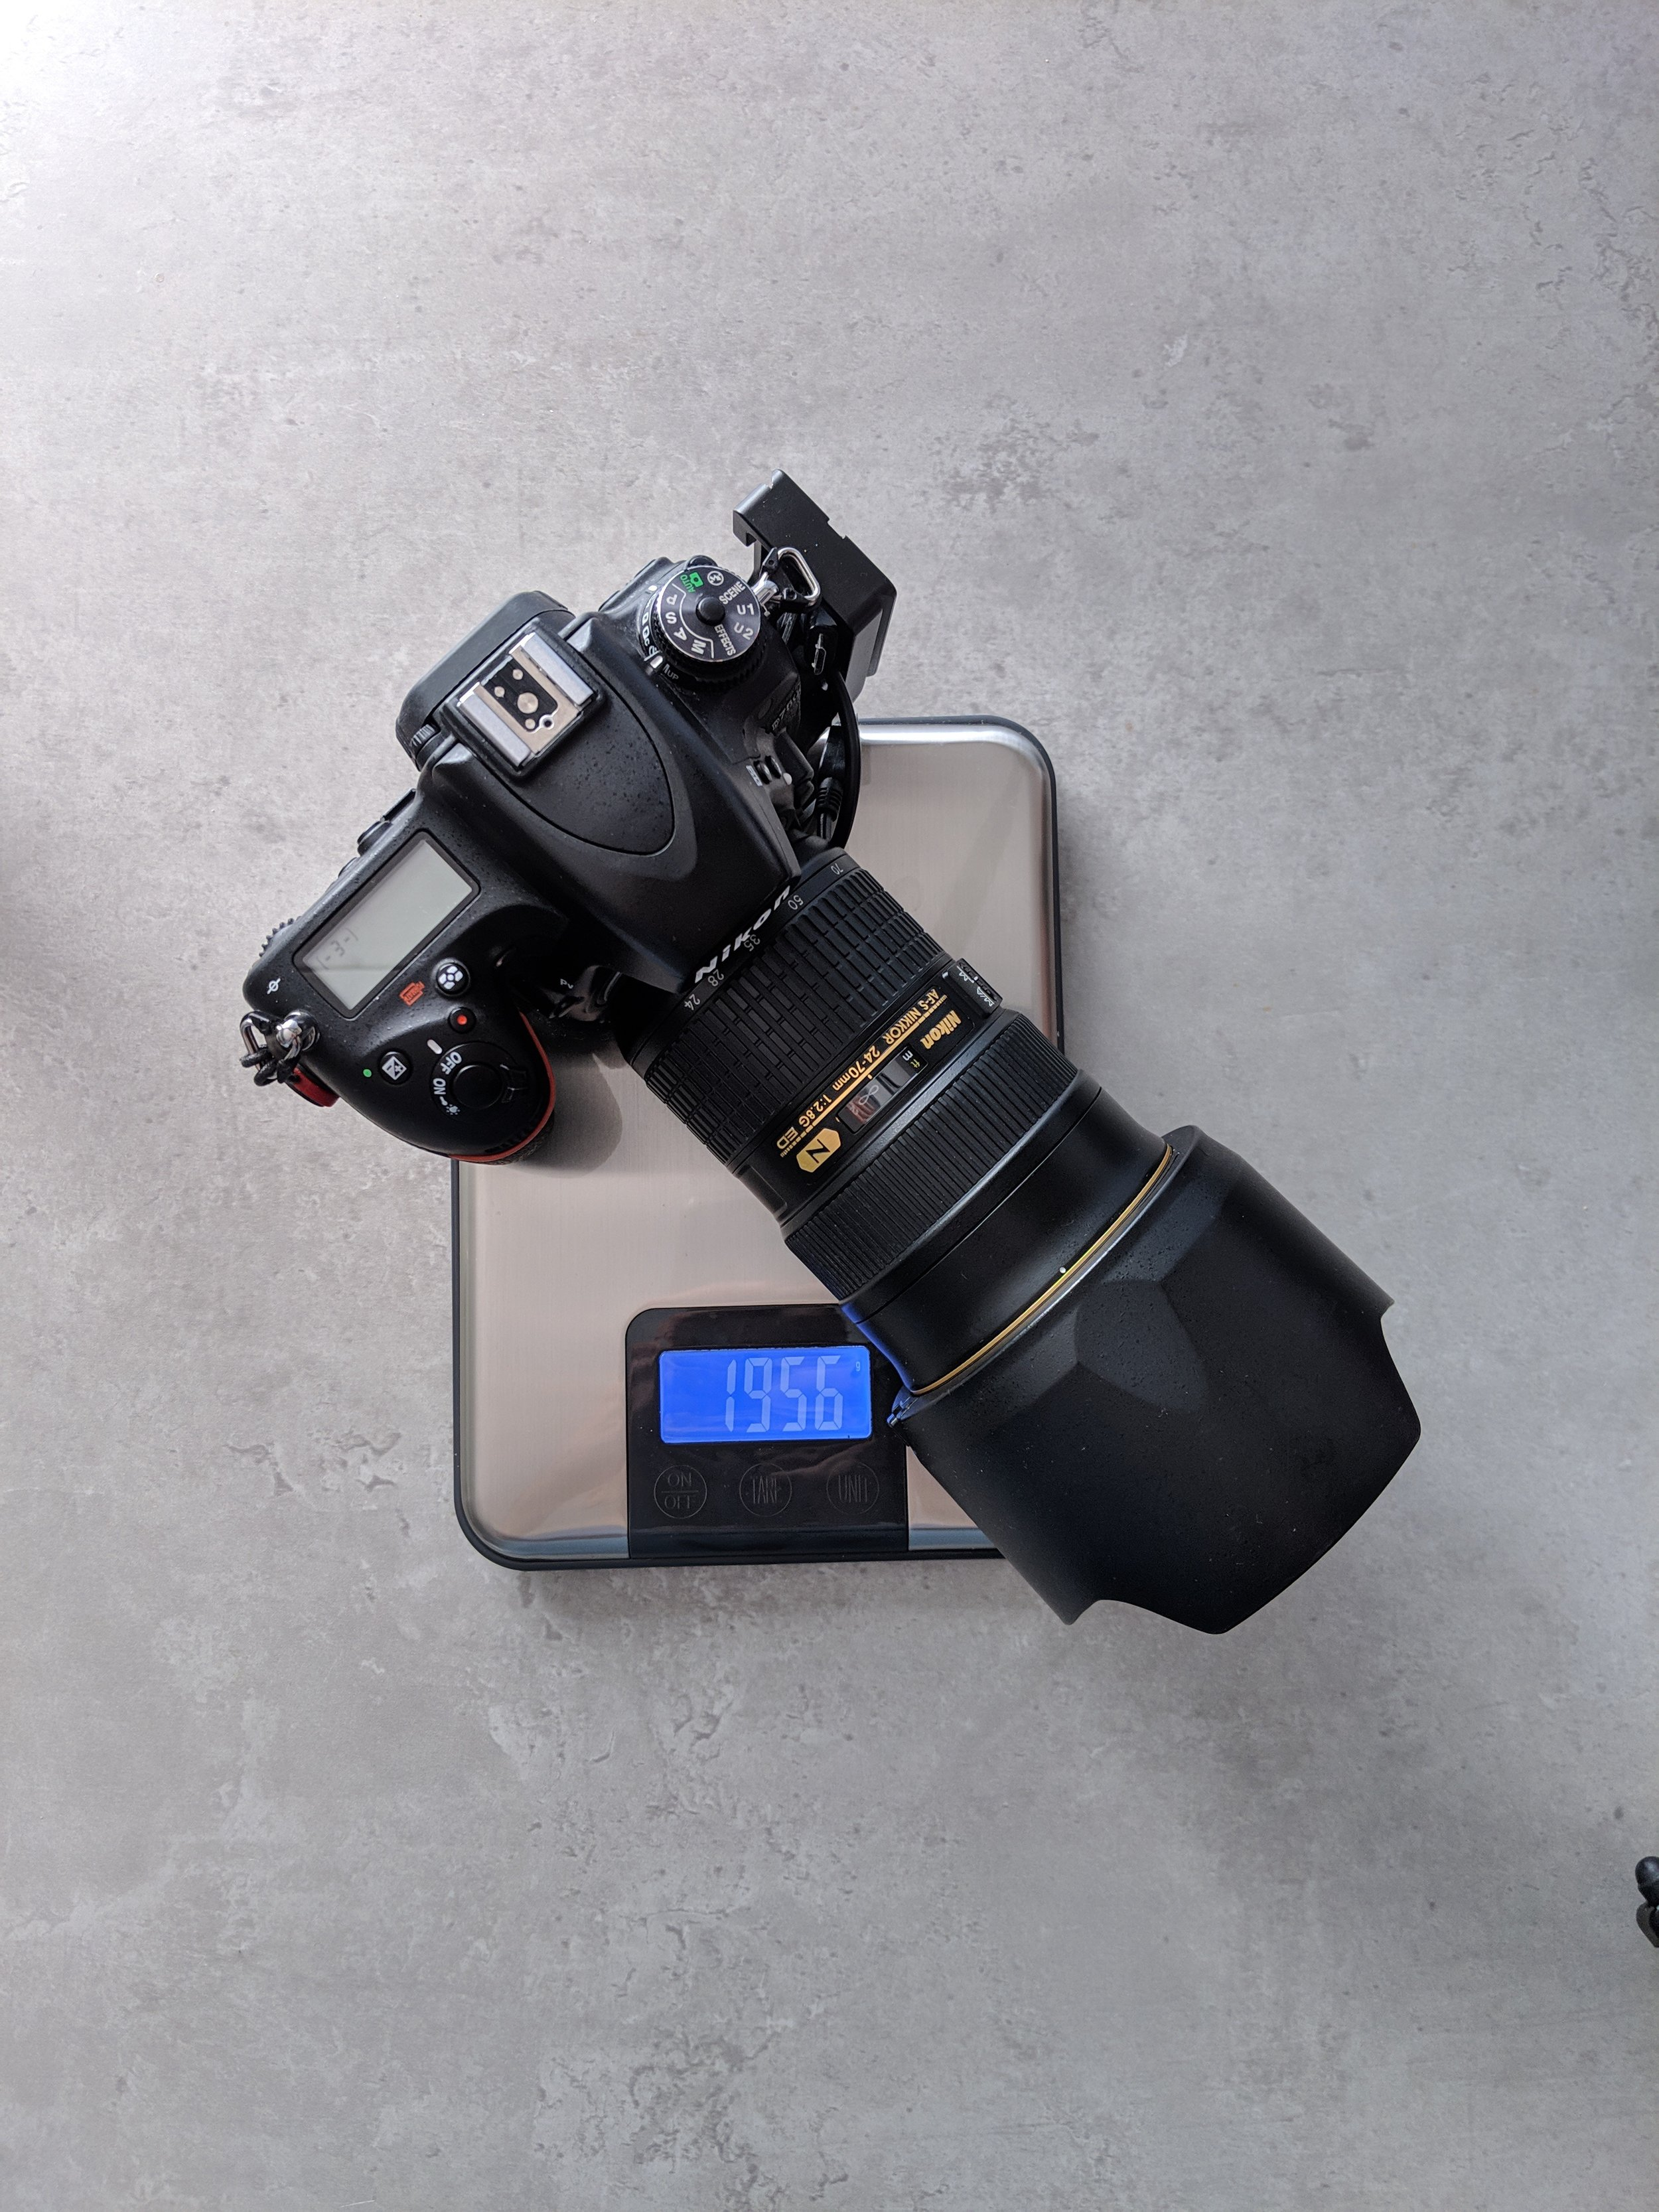 Nikon D750 weight with 24-70mm